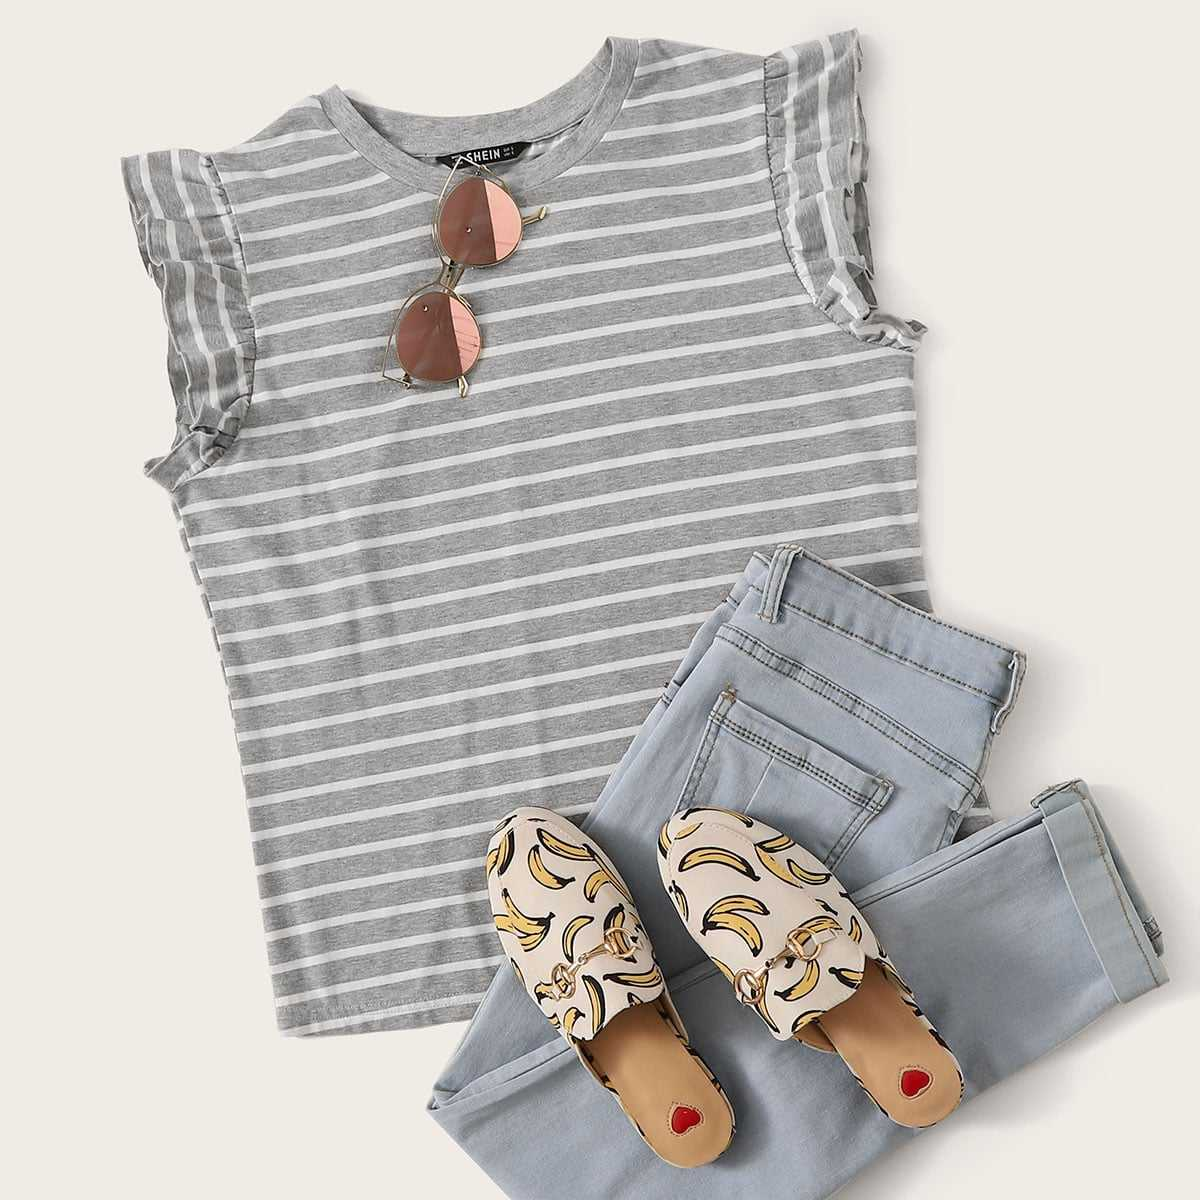 Ruffle Armhole Striped Top in Grey by ROMWE on GOOFASH